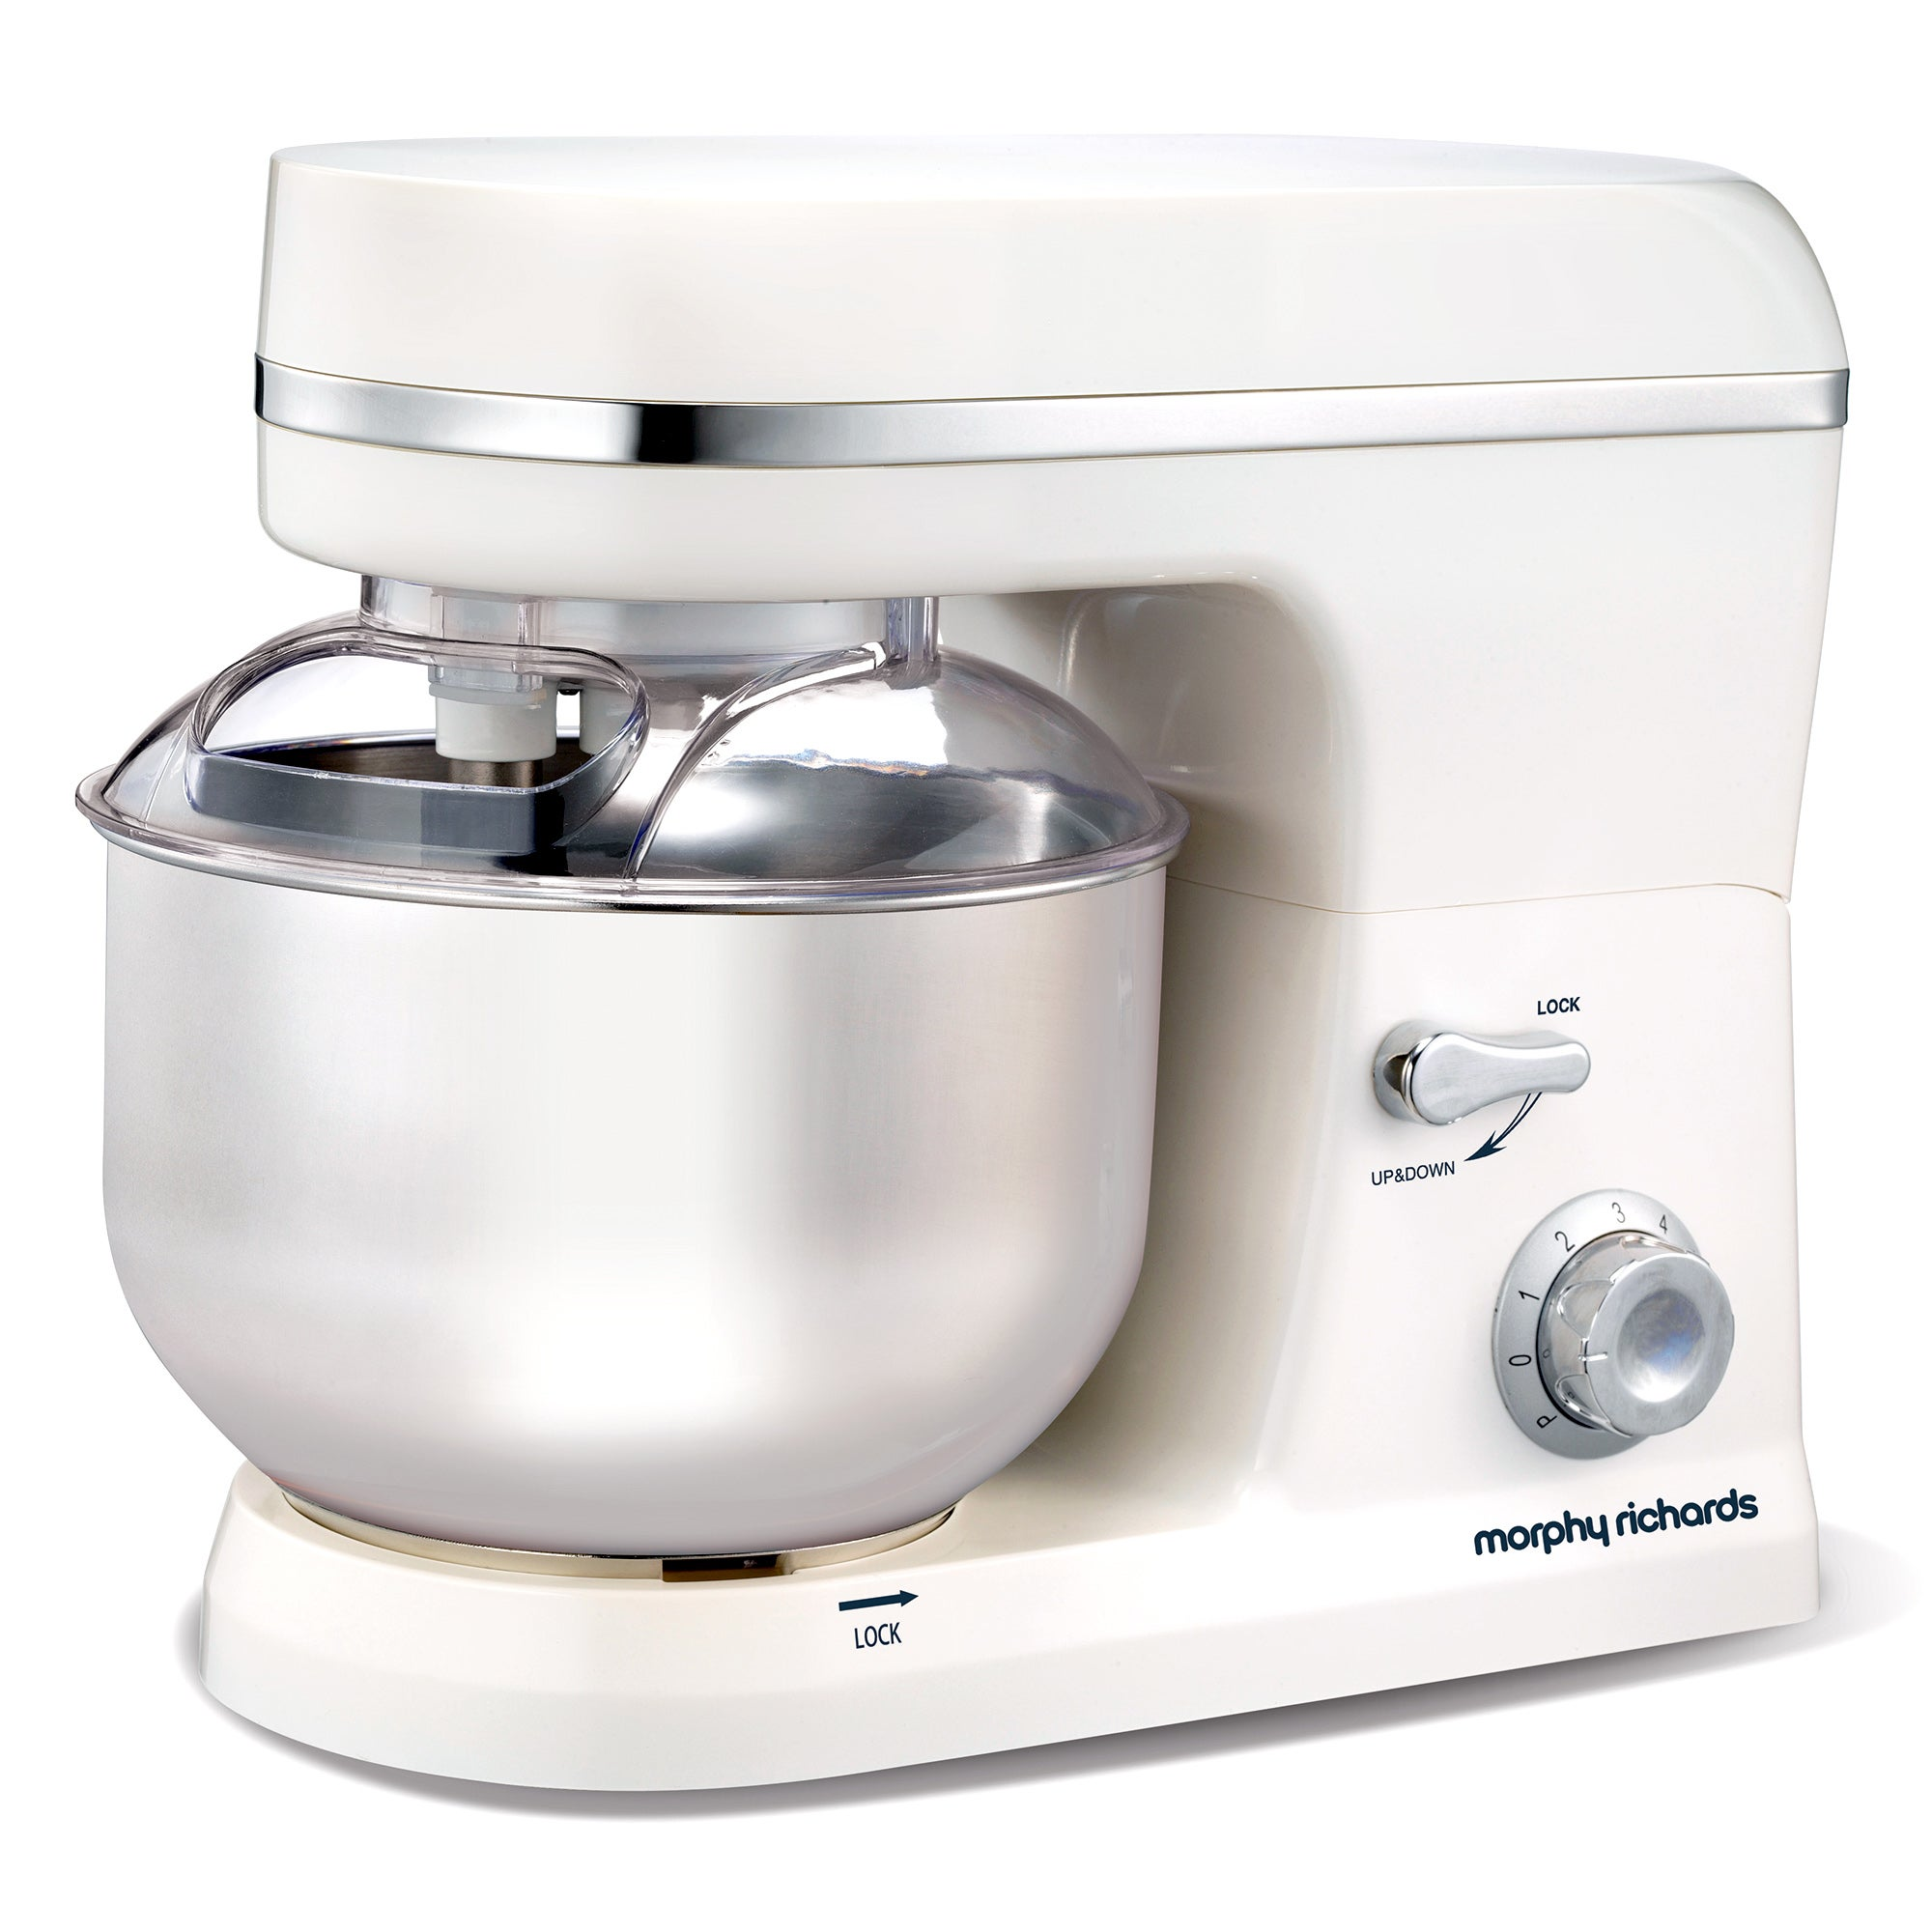 Morphy Richards Accents 400004 White Stand Mixer